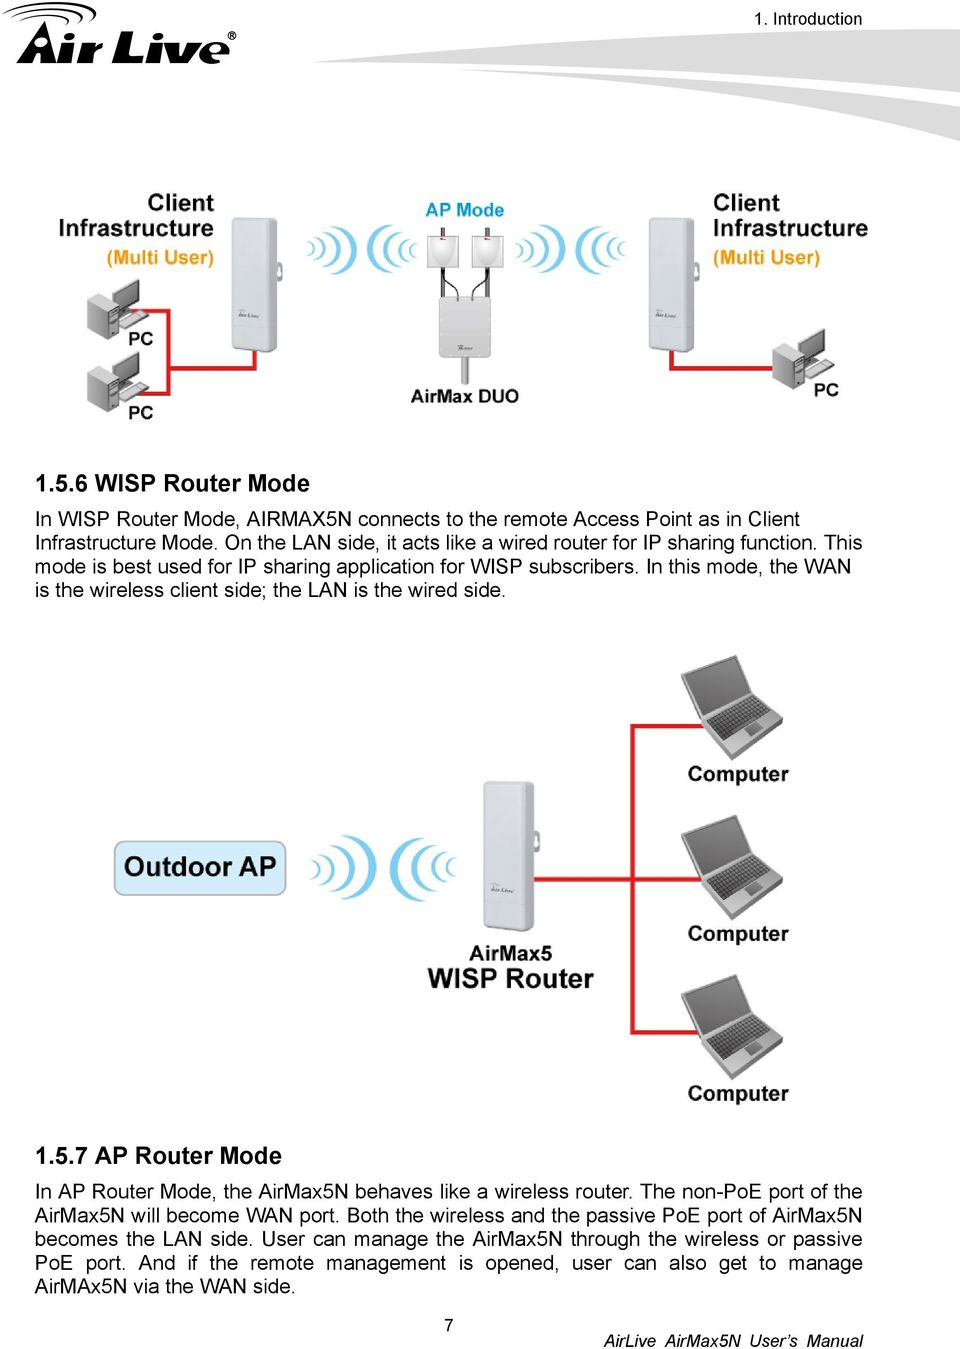 In this mode, the WAN is the wireless client side; the LAN is the wired side. 1.5.7 AP Router Mode In AP Router Mode, the AirMax5N behaves like a wireless router.